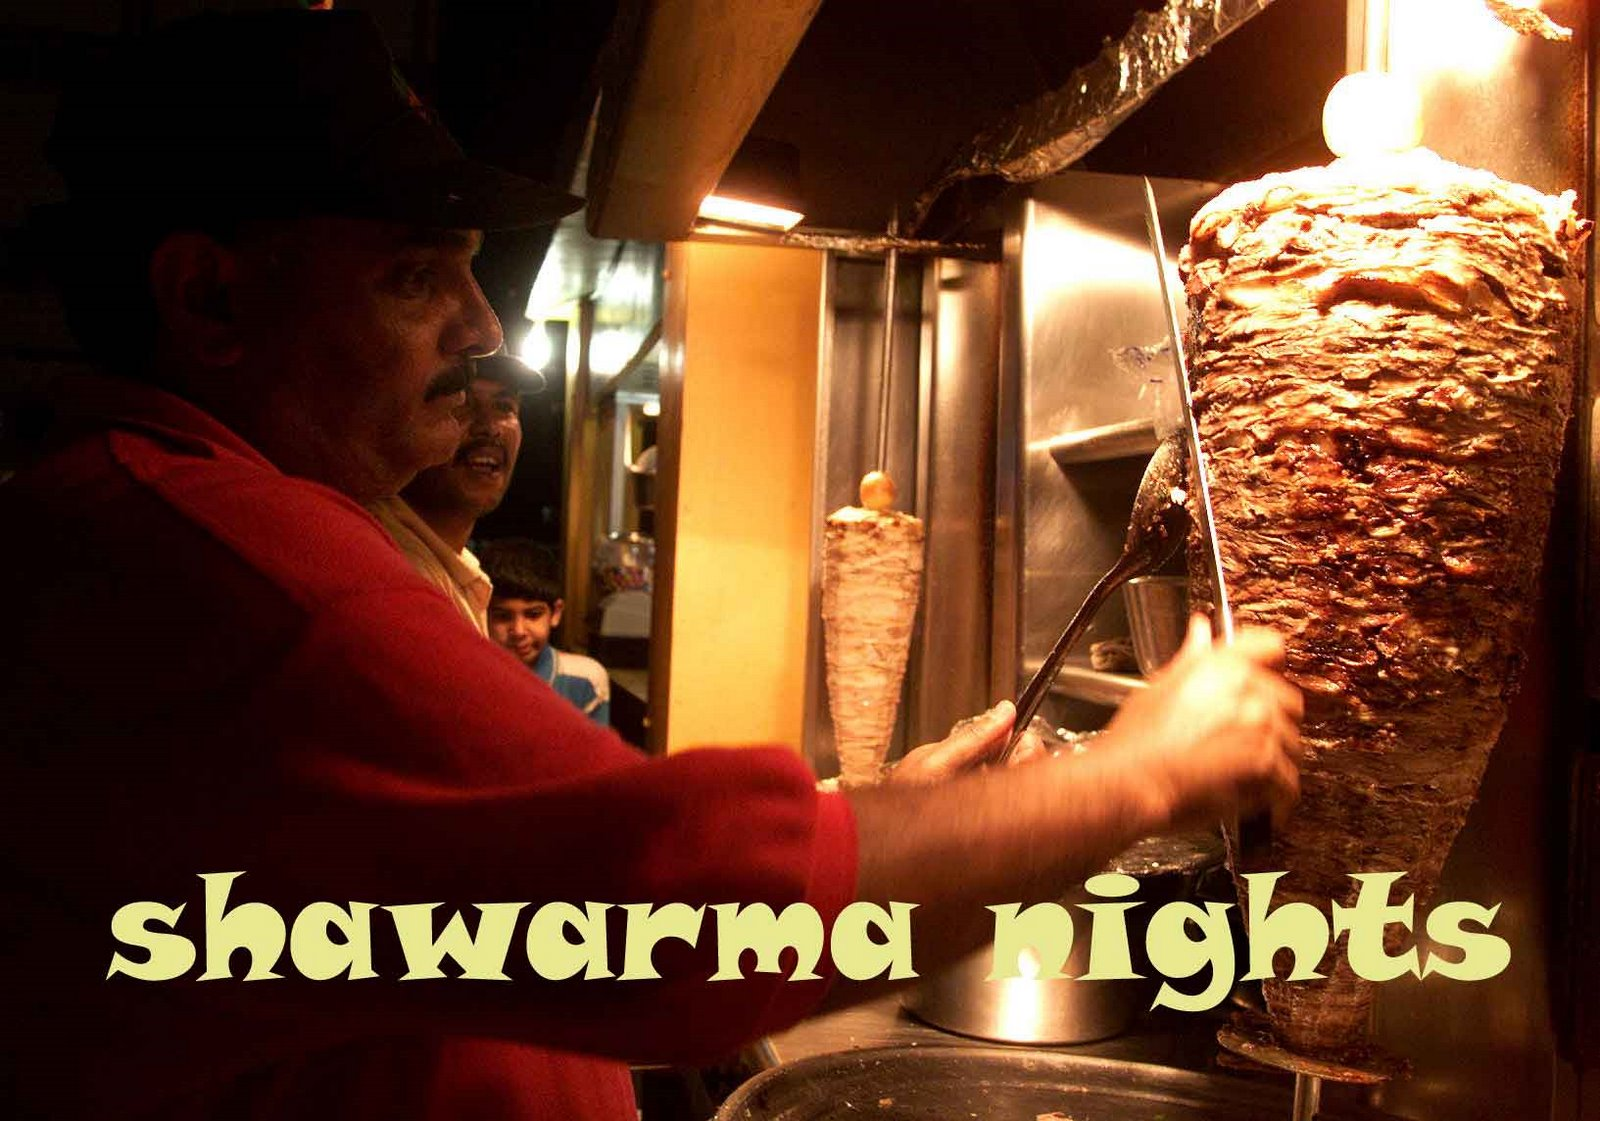 Shawarma Nights